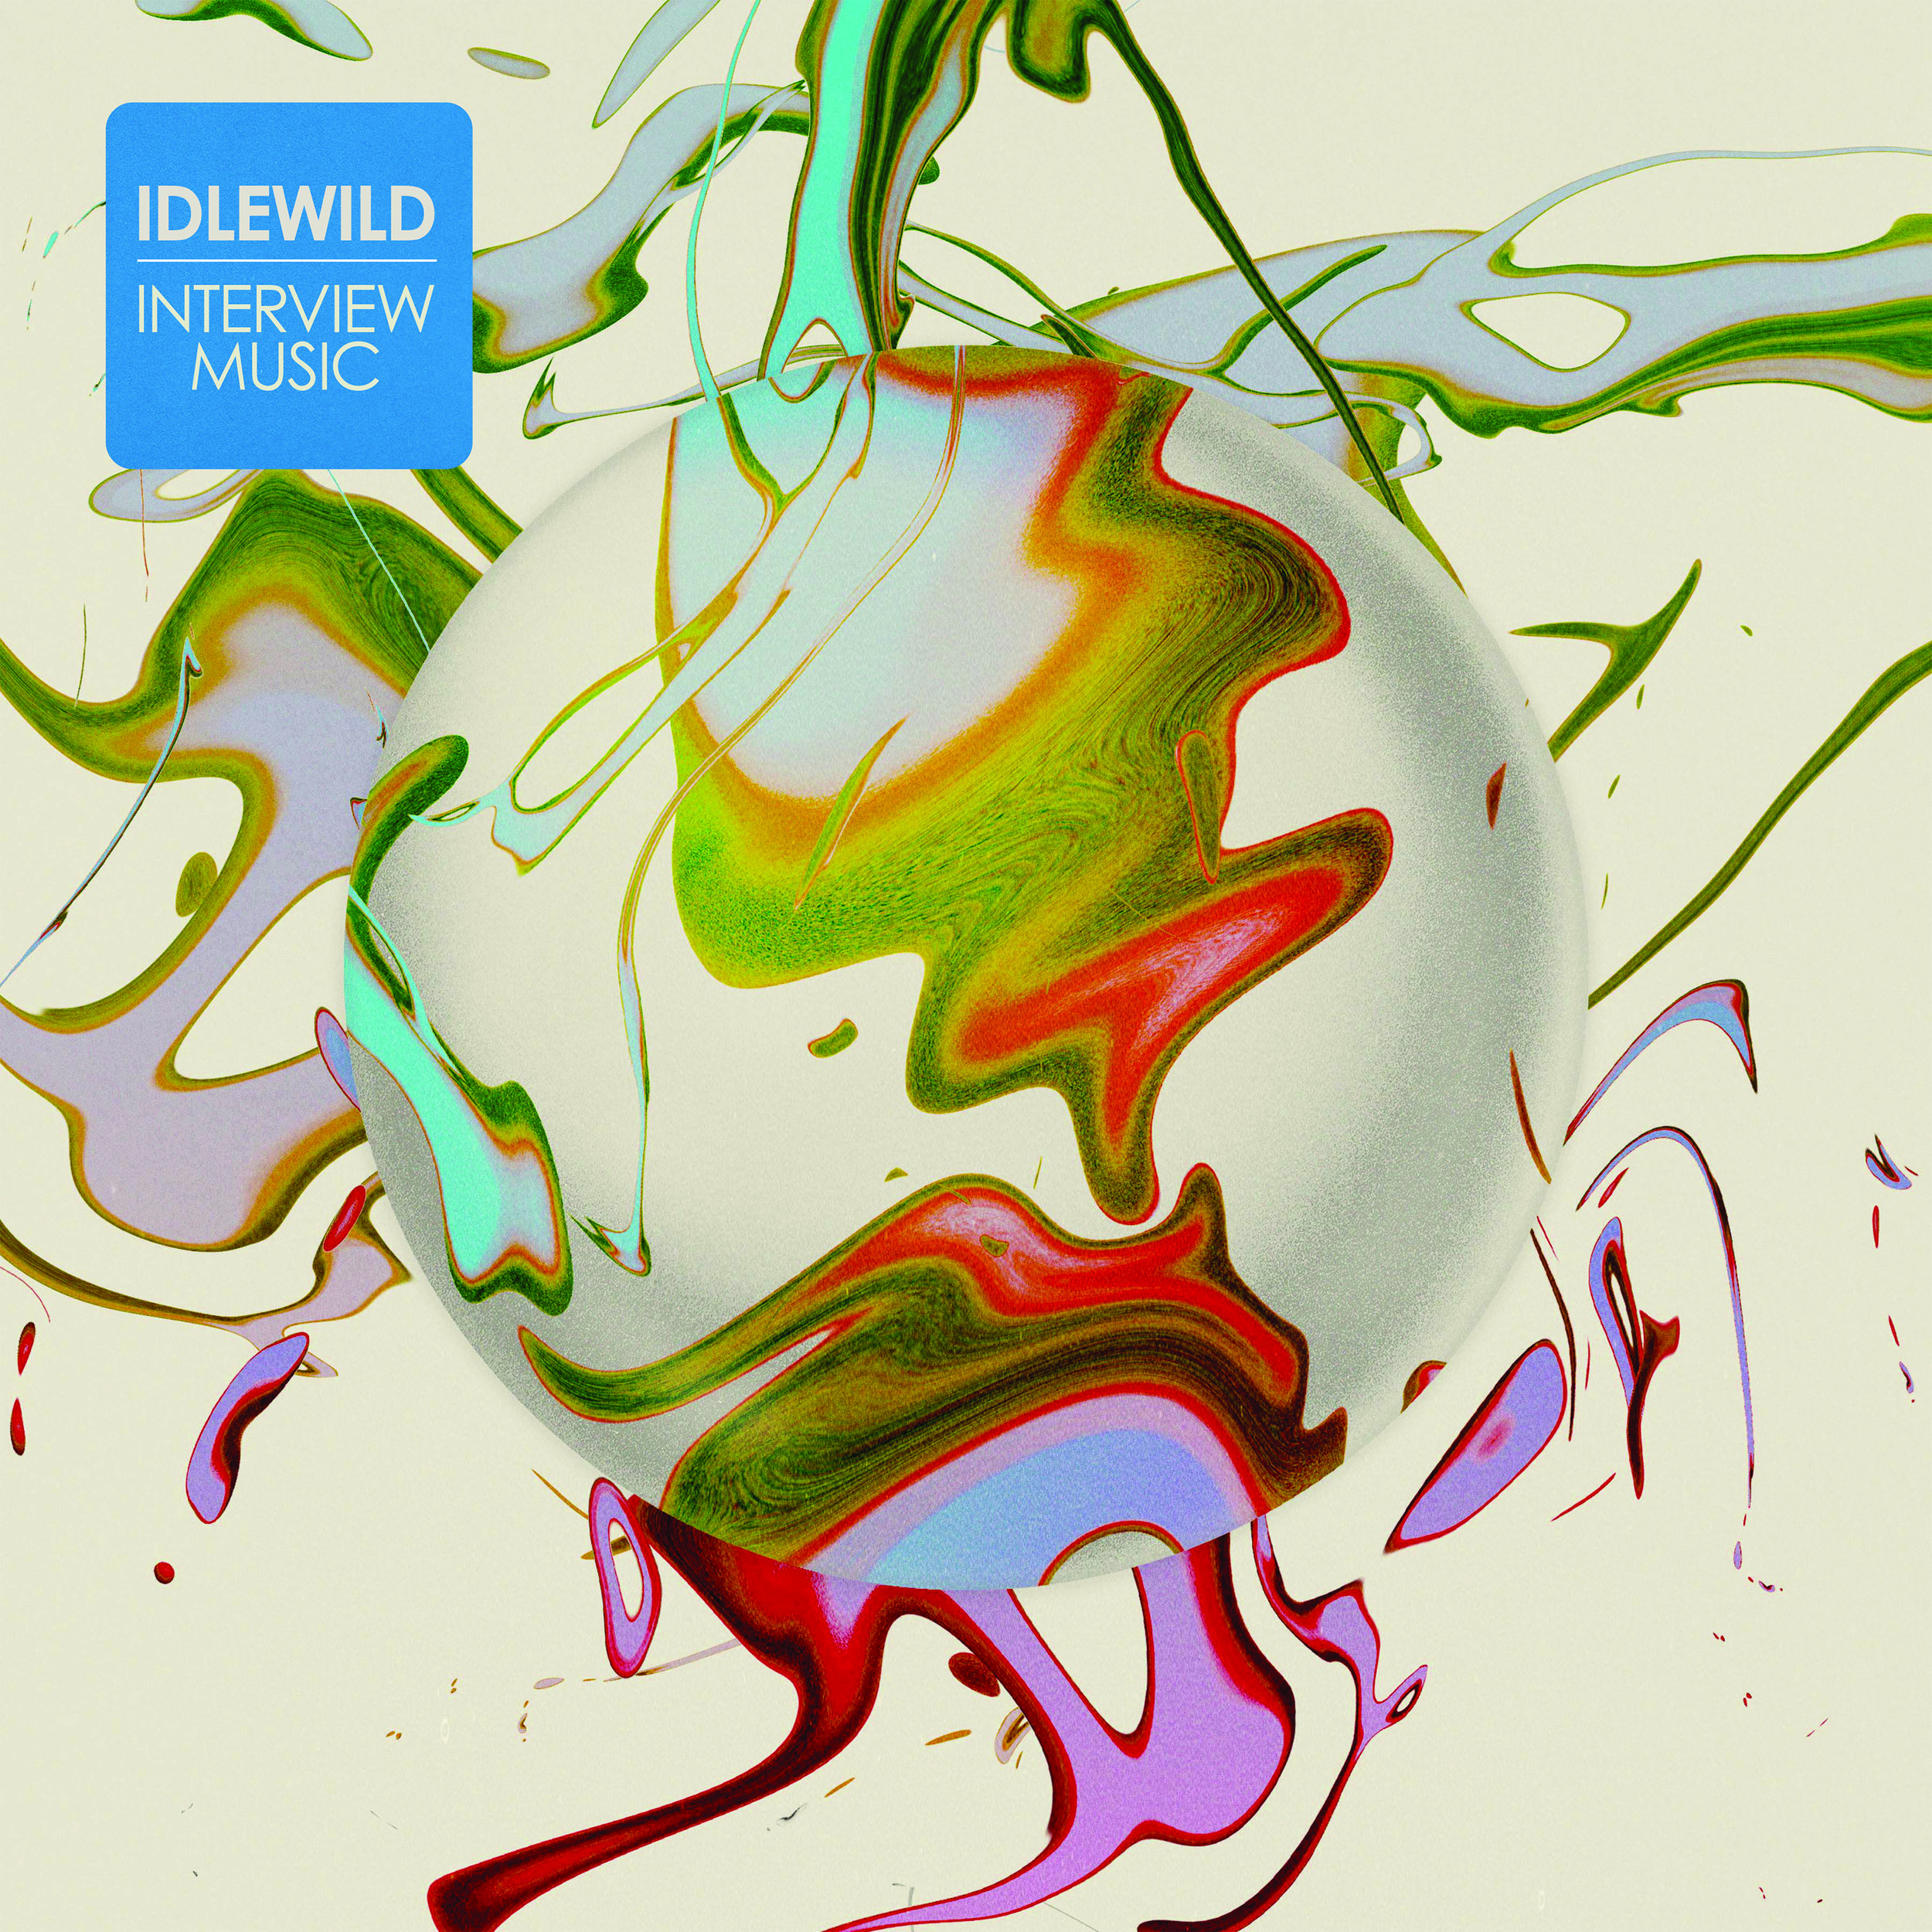 Idlewild - Interview Music (sticker).jpg